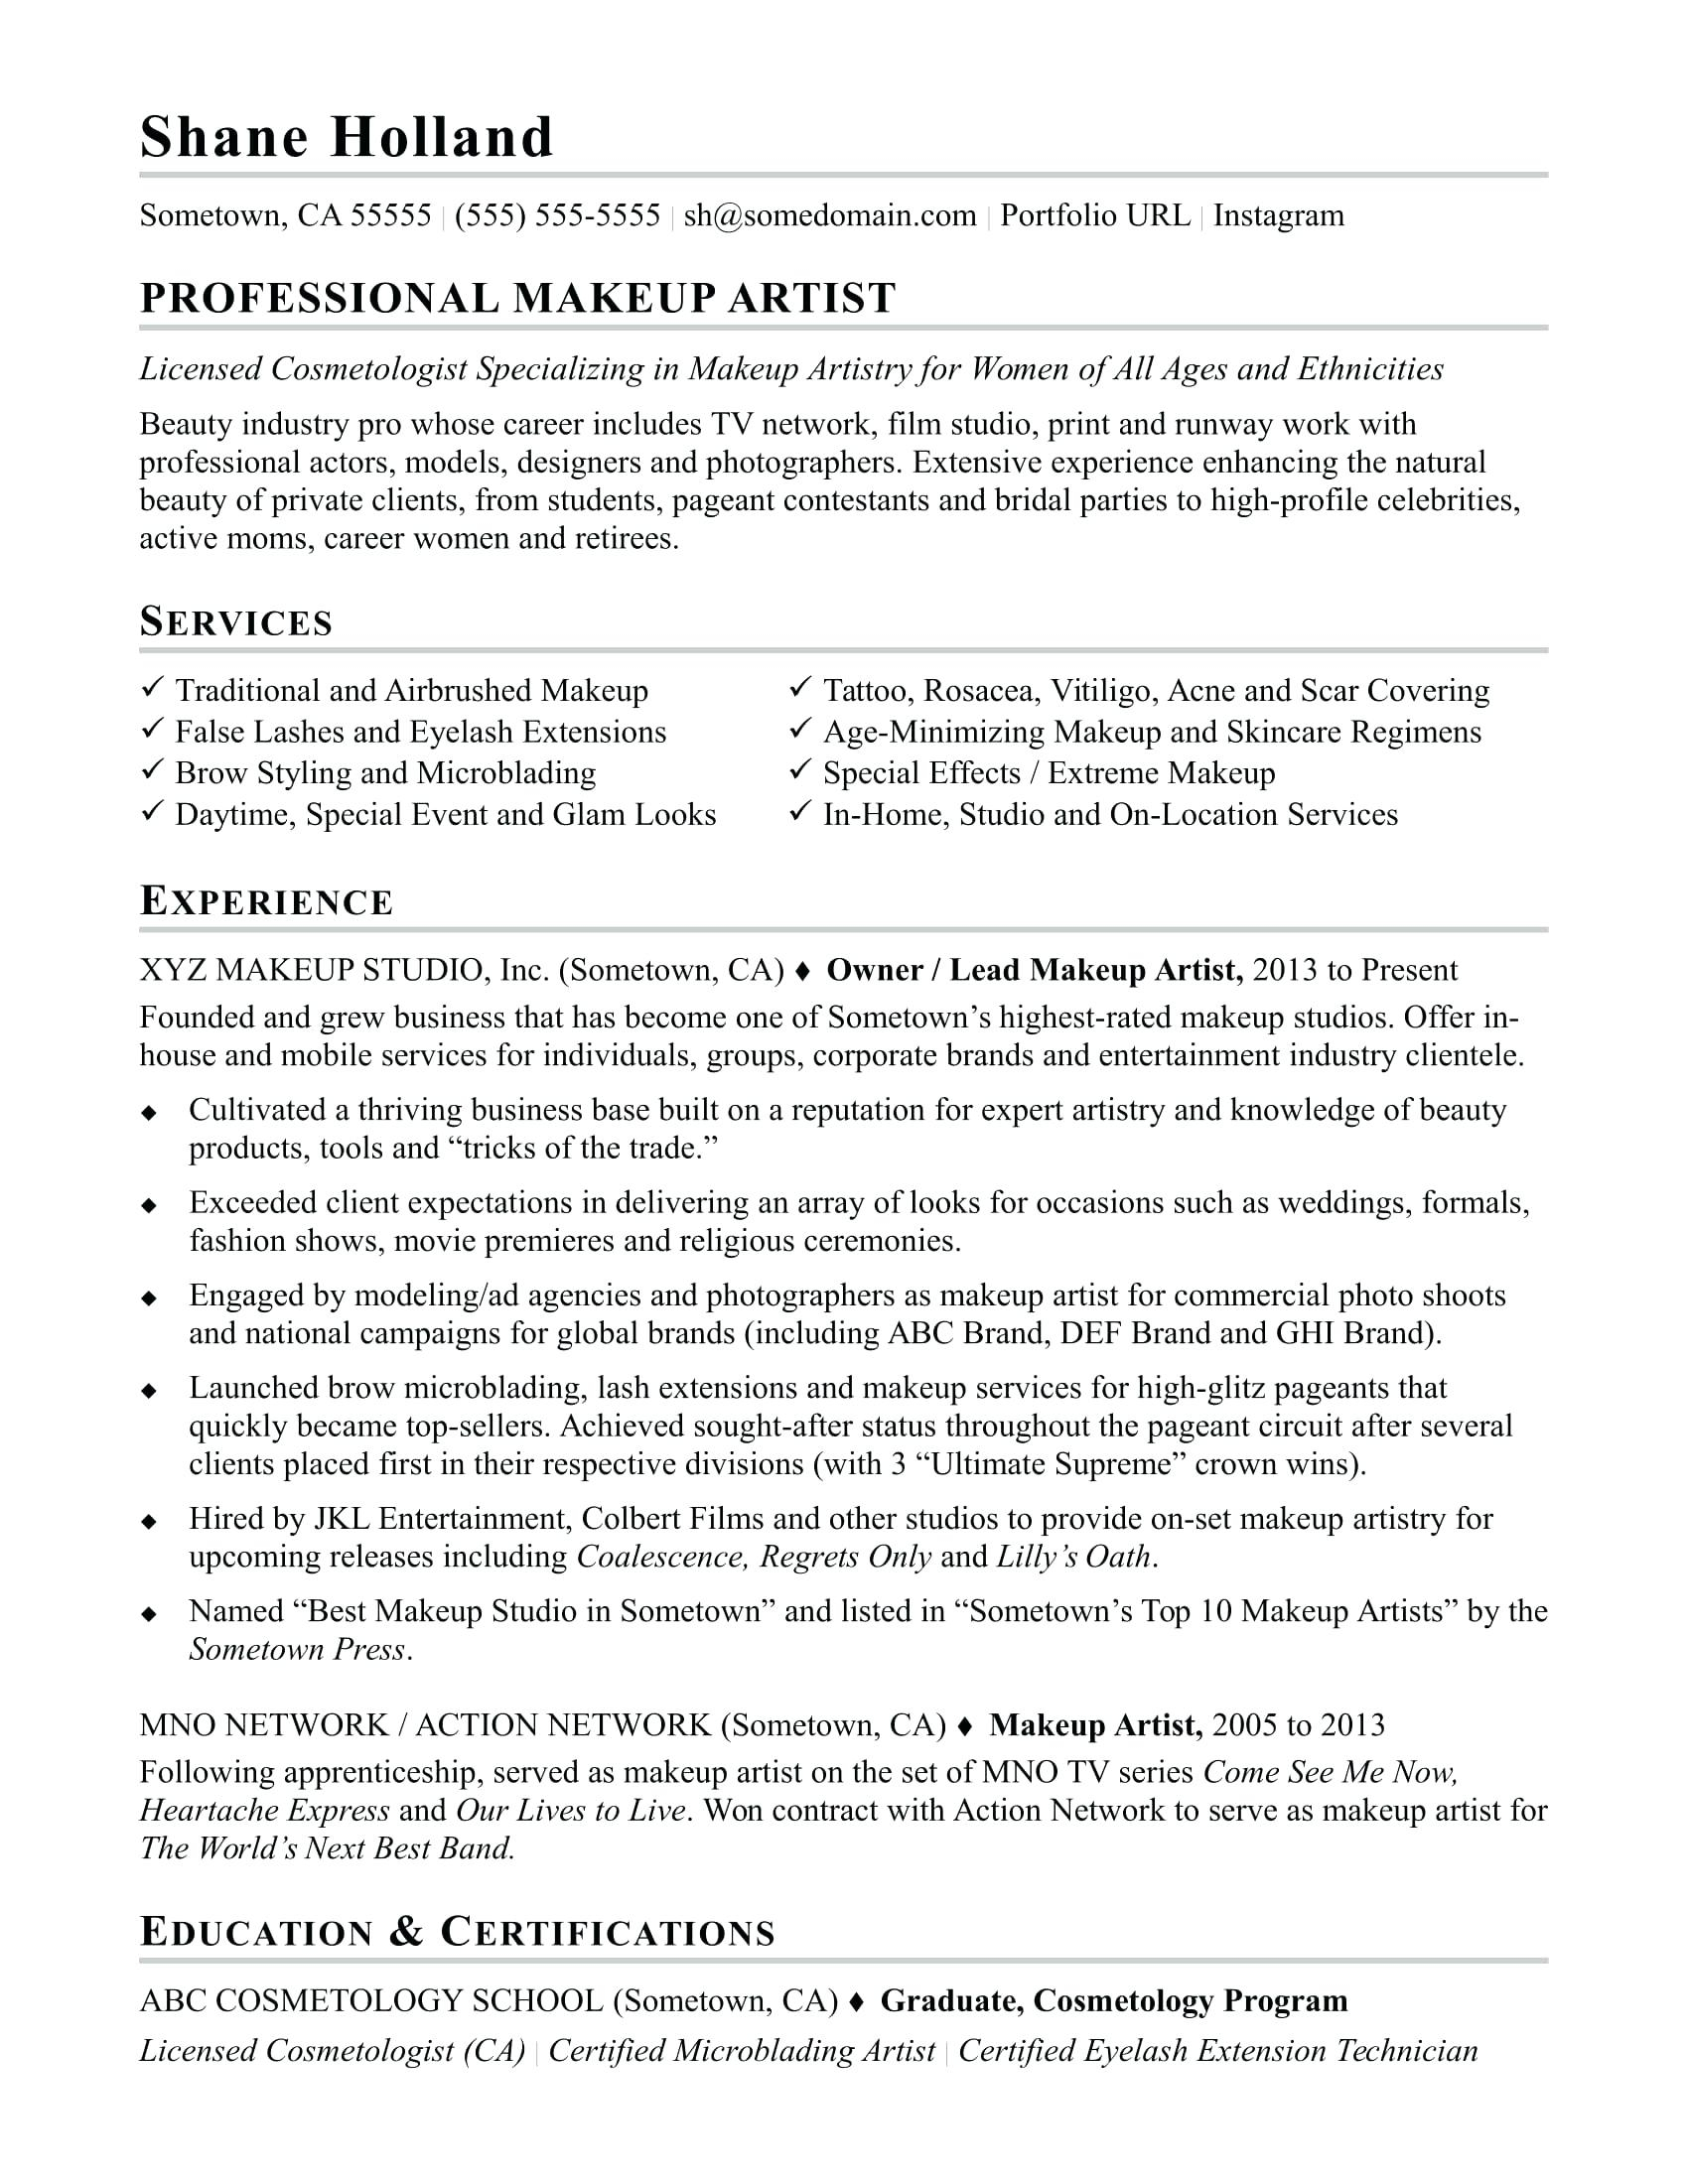 Makeup Artist Resume Template - Makeup Artist Resume Sample Mac Objective Job Freelance Skills